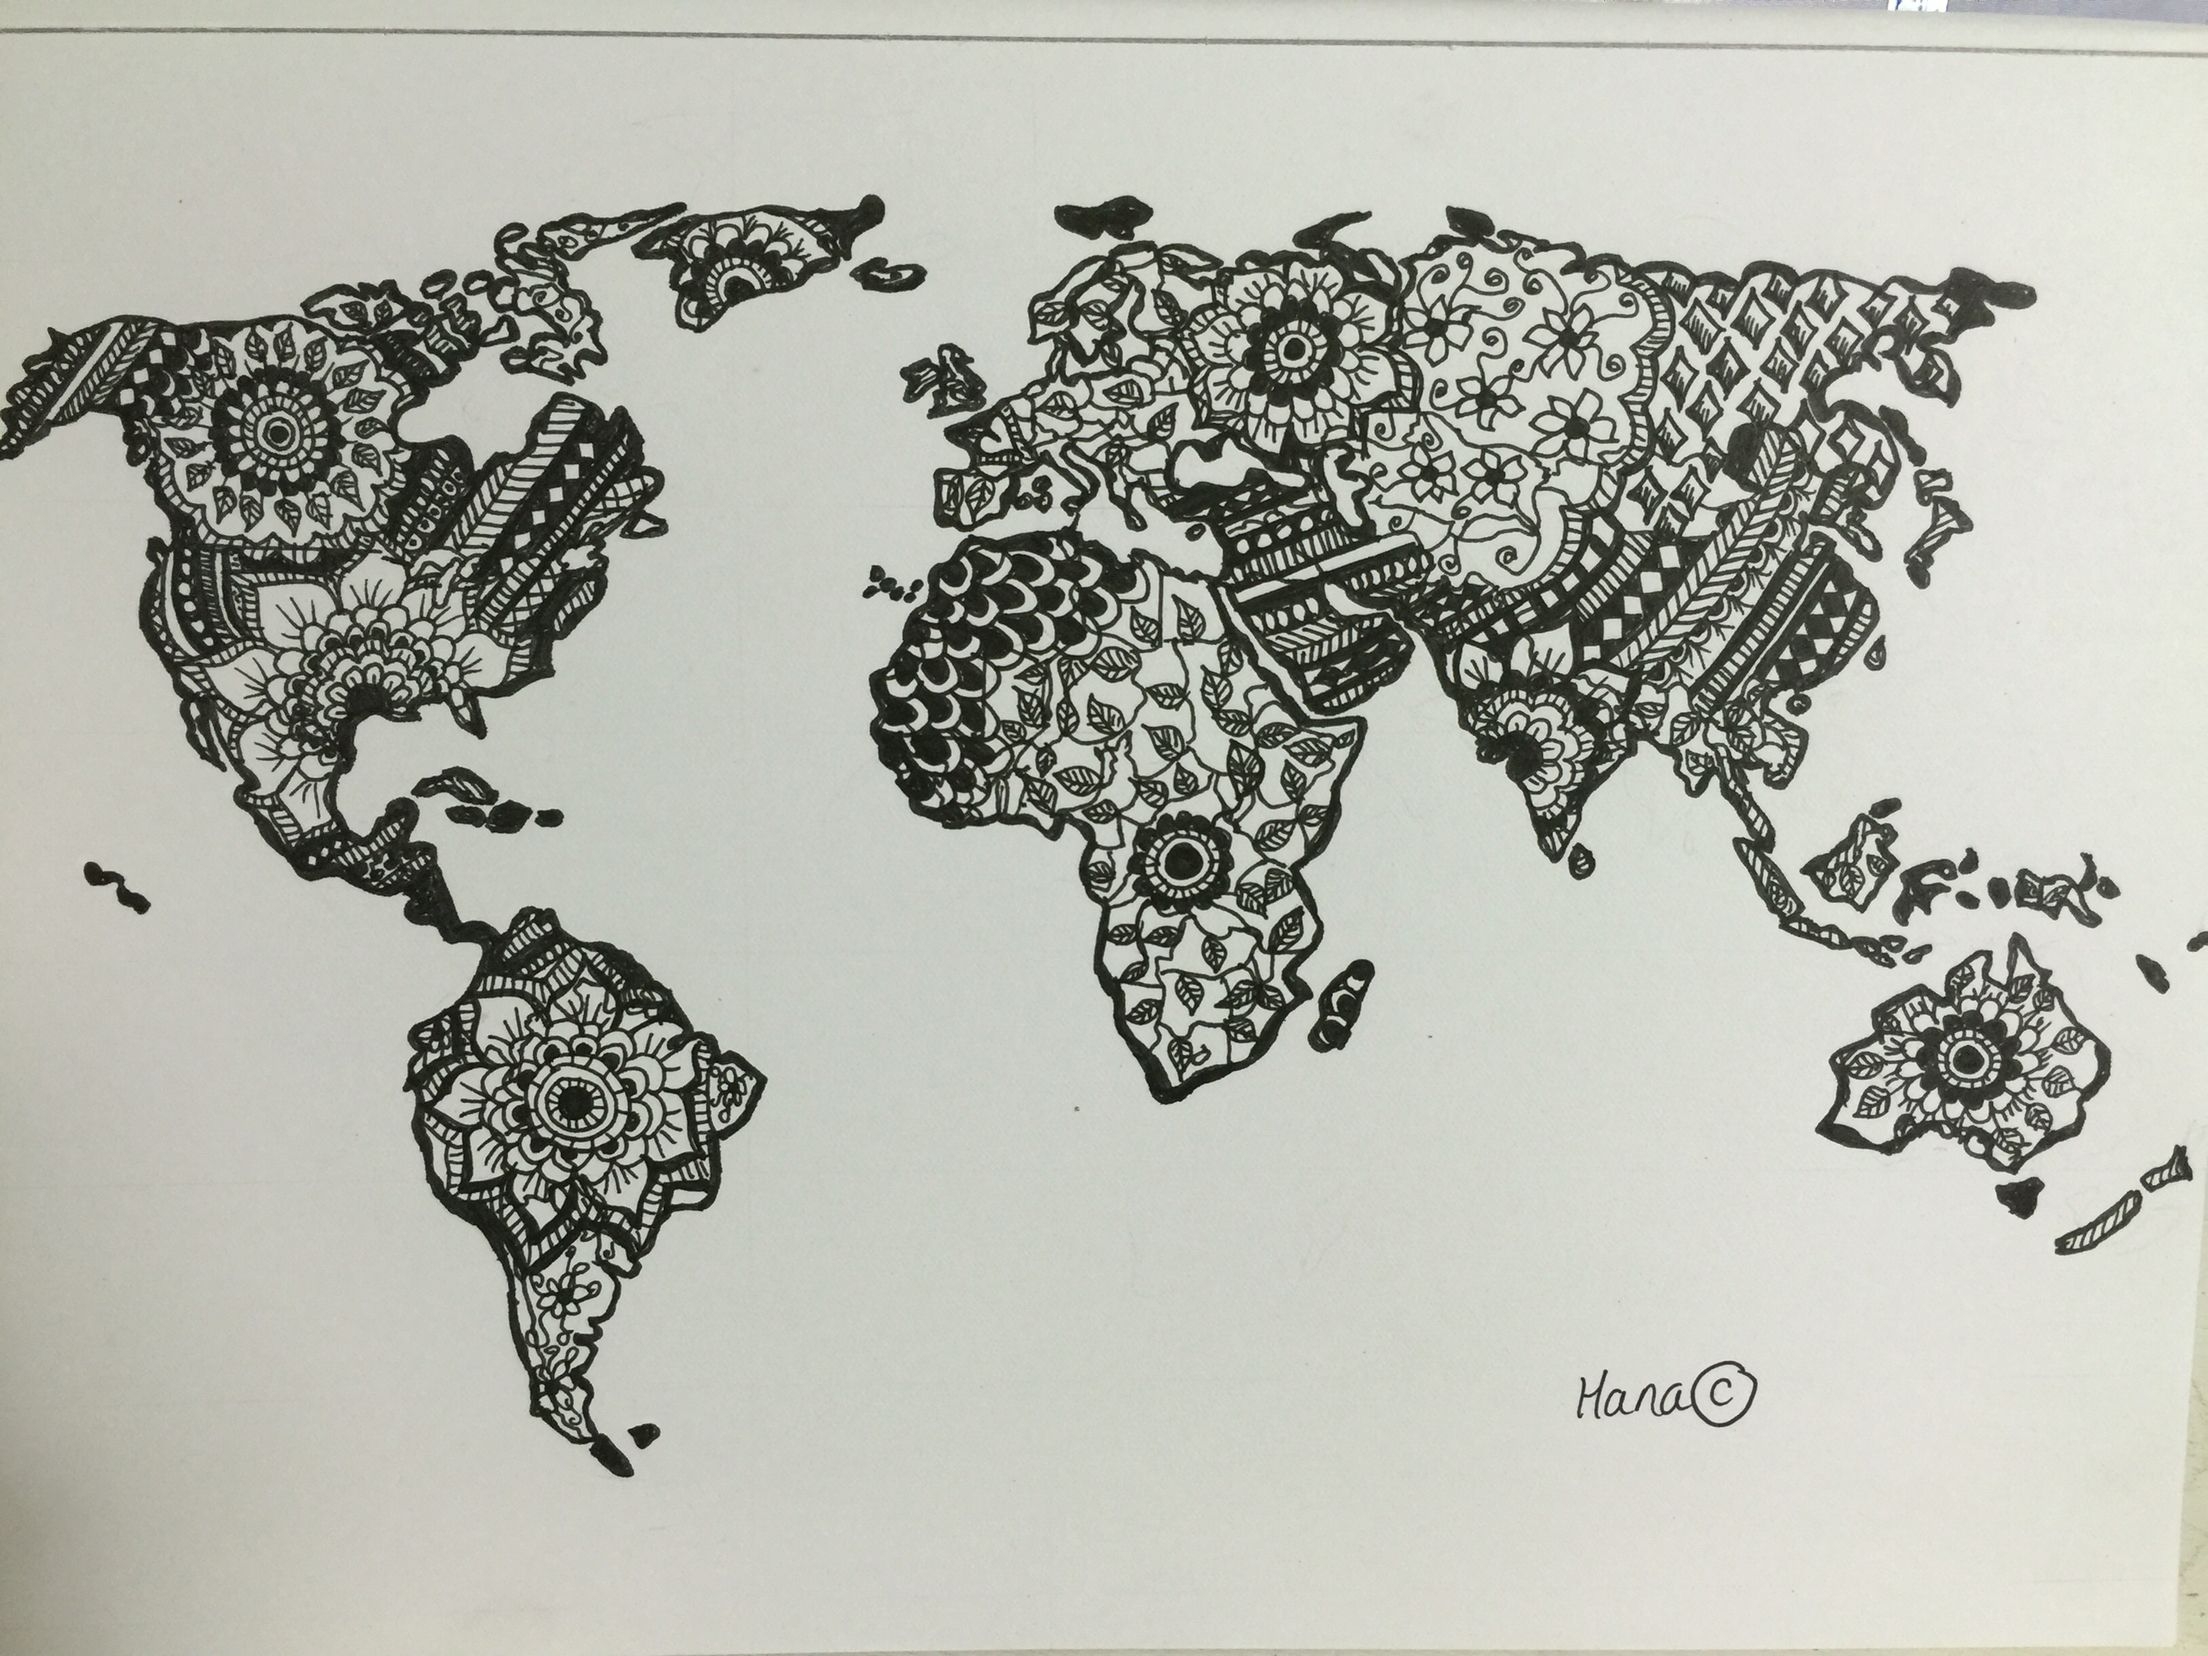 World Map Mandala Adult Colouring Page Original Drawing By Me - Mandala map of the world